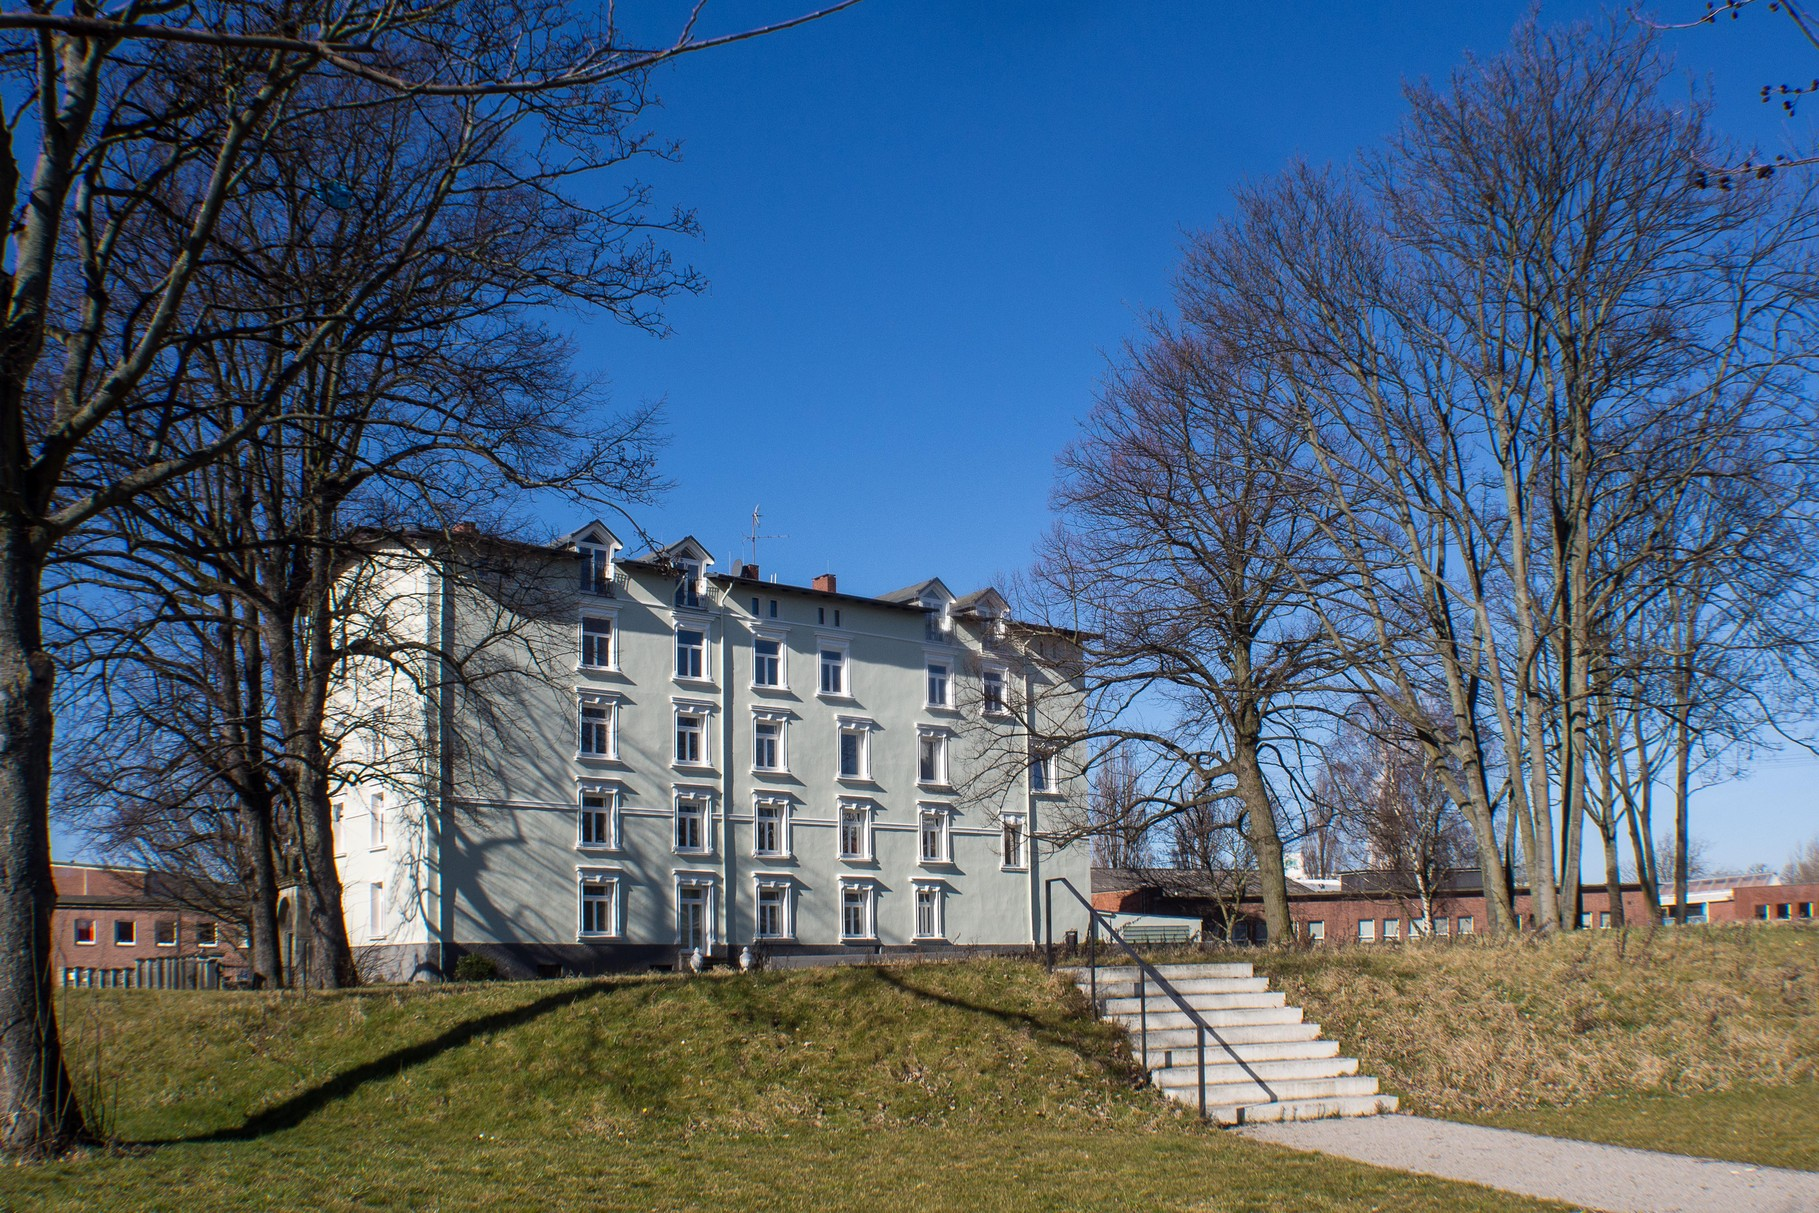 Harburger Schloß